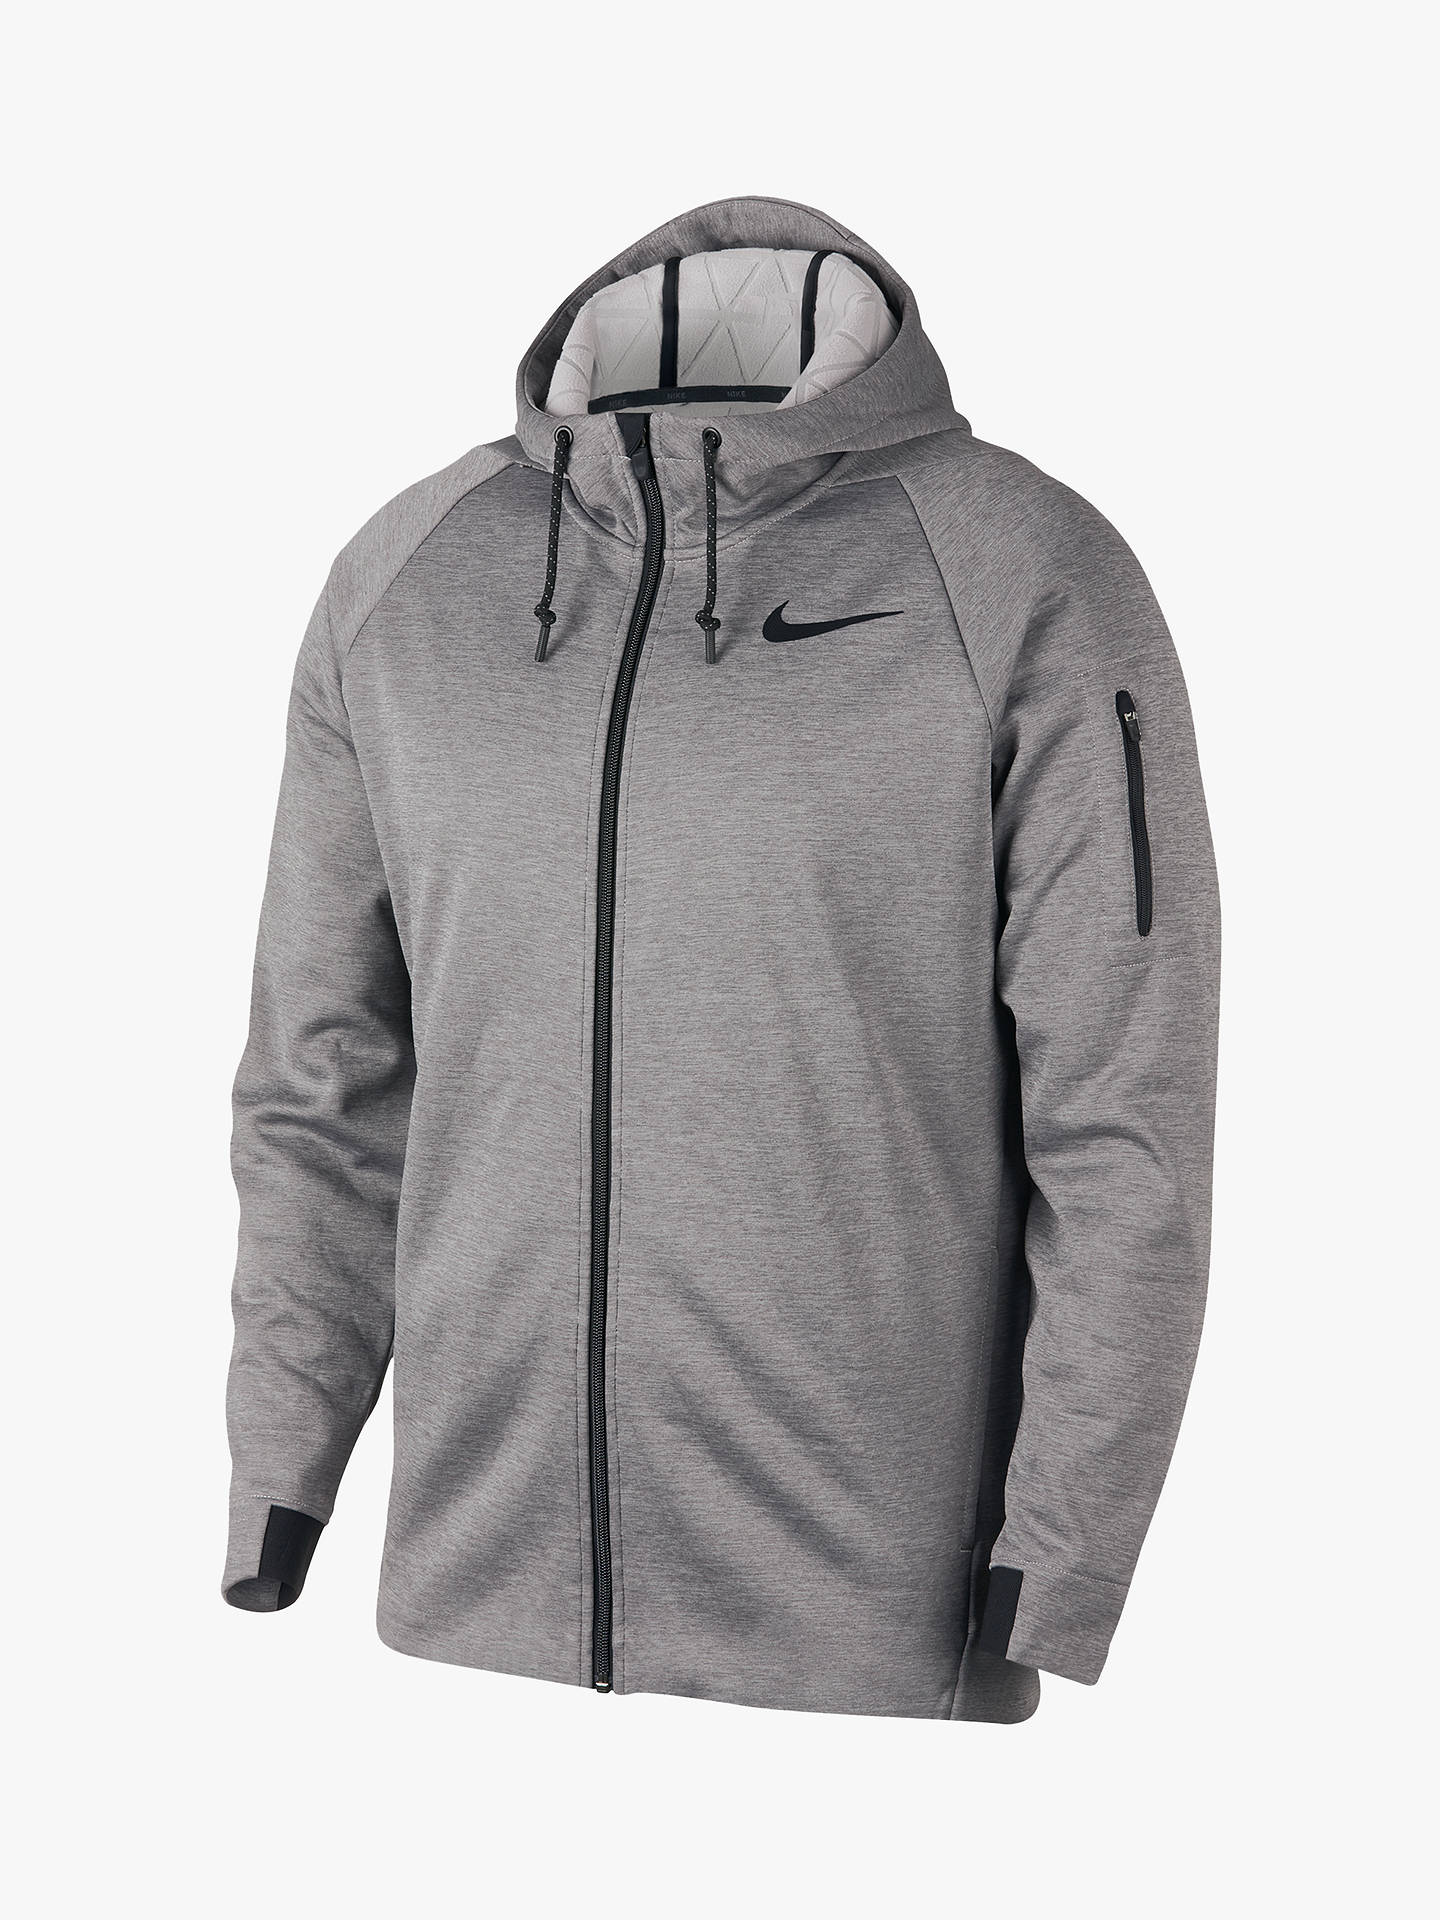 415e9f97c6 Nike Therma Sphere Hooded Full Zip Training Jacket at John Lewis ...